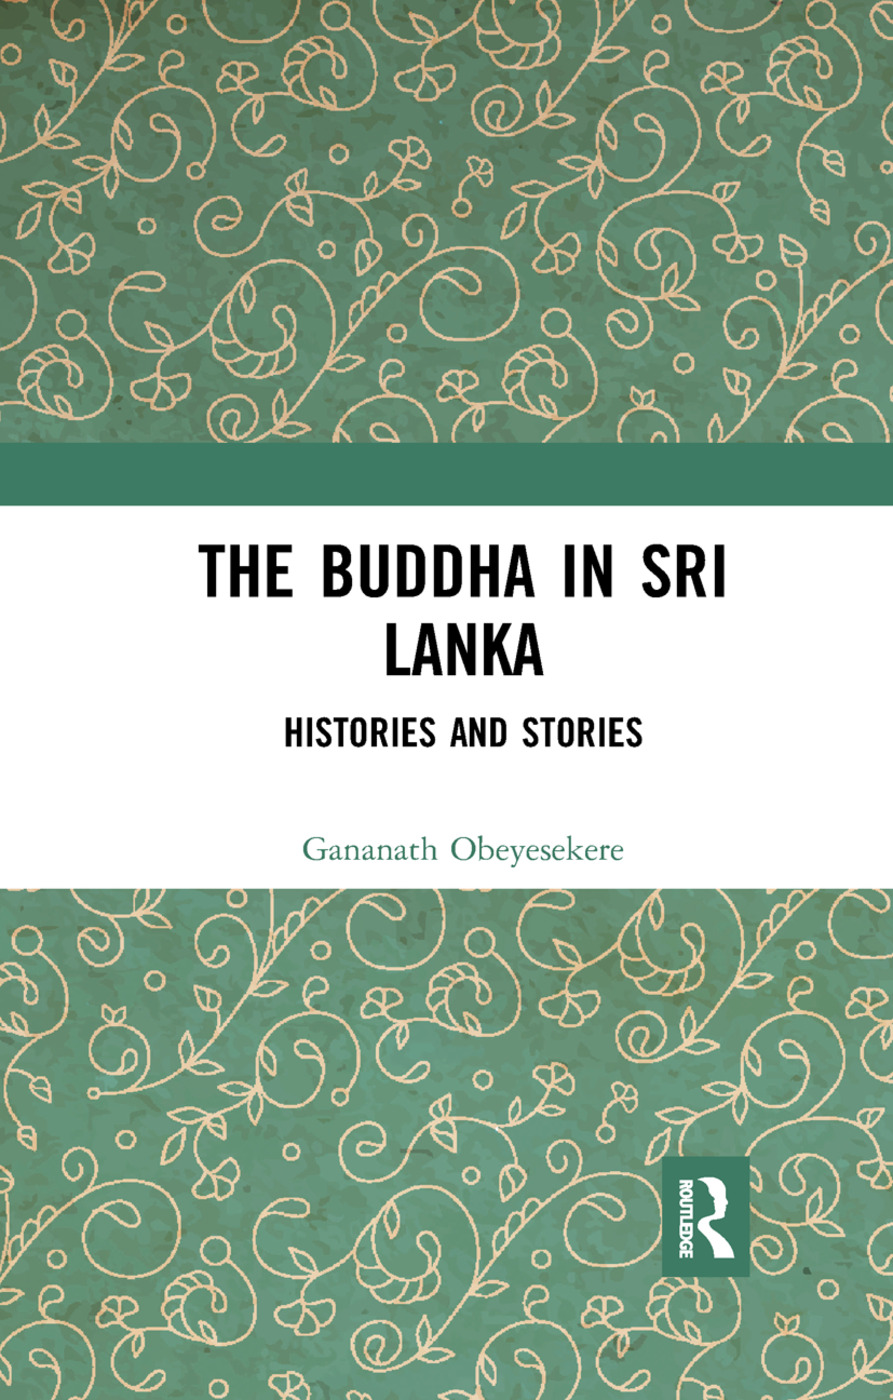 The Buddha in Sri Lanka: Histories and Stories book cover